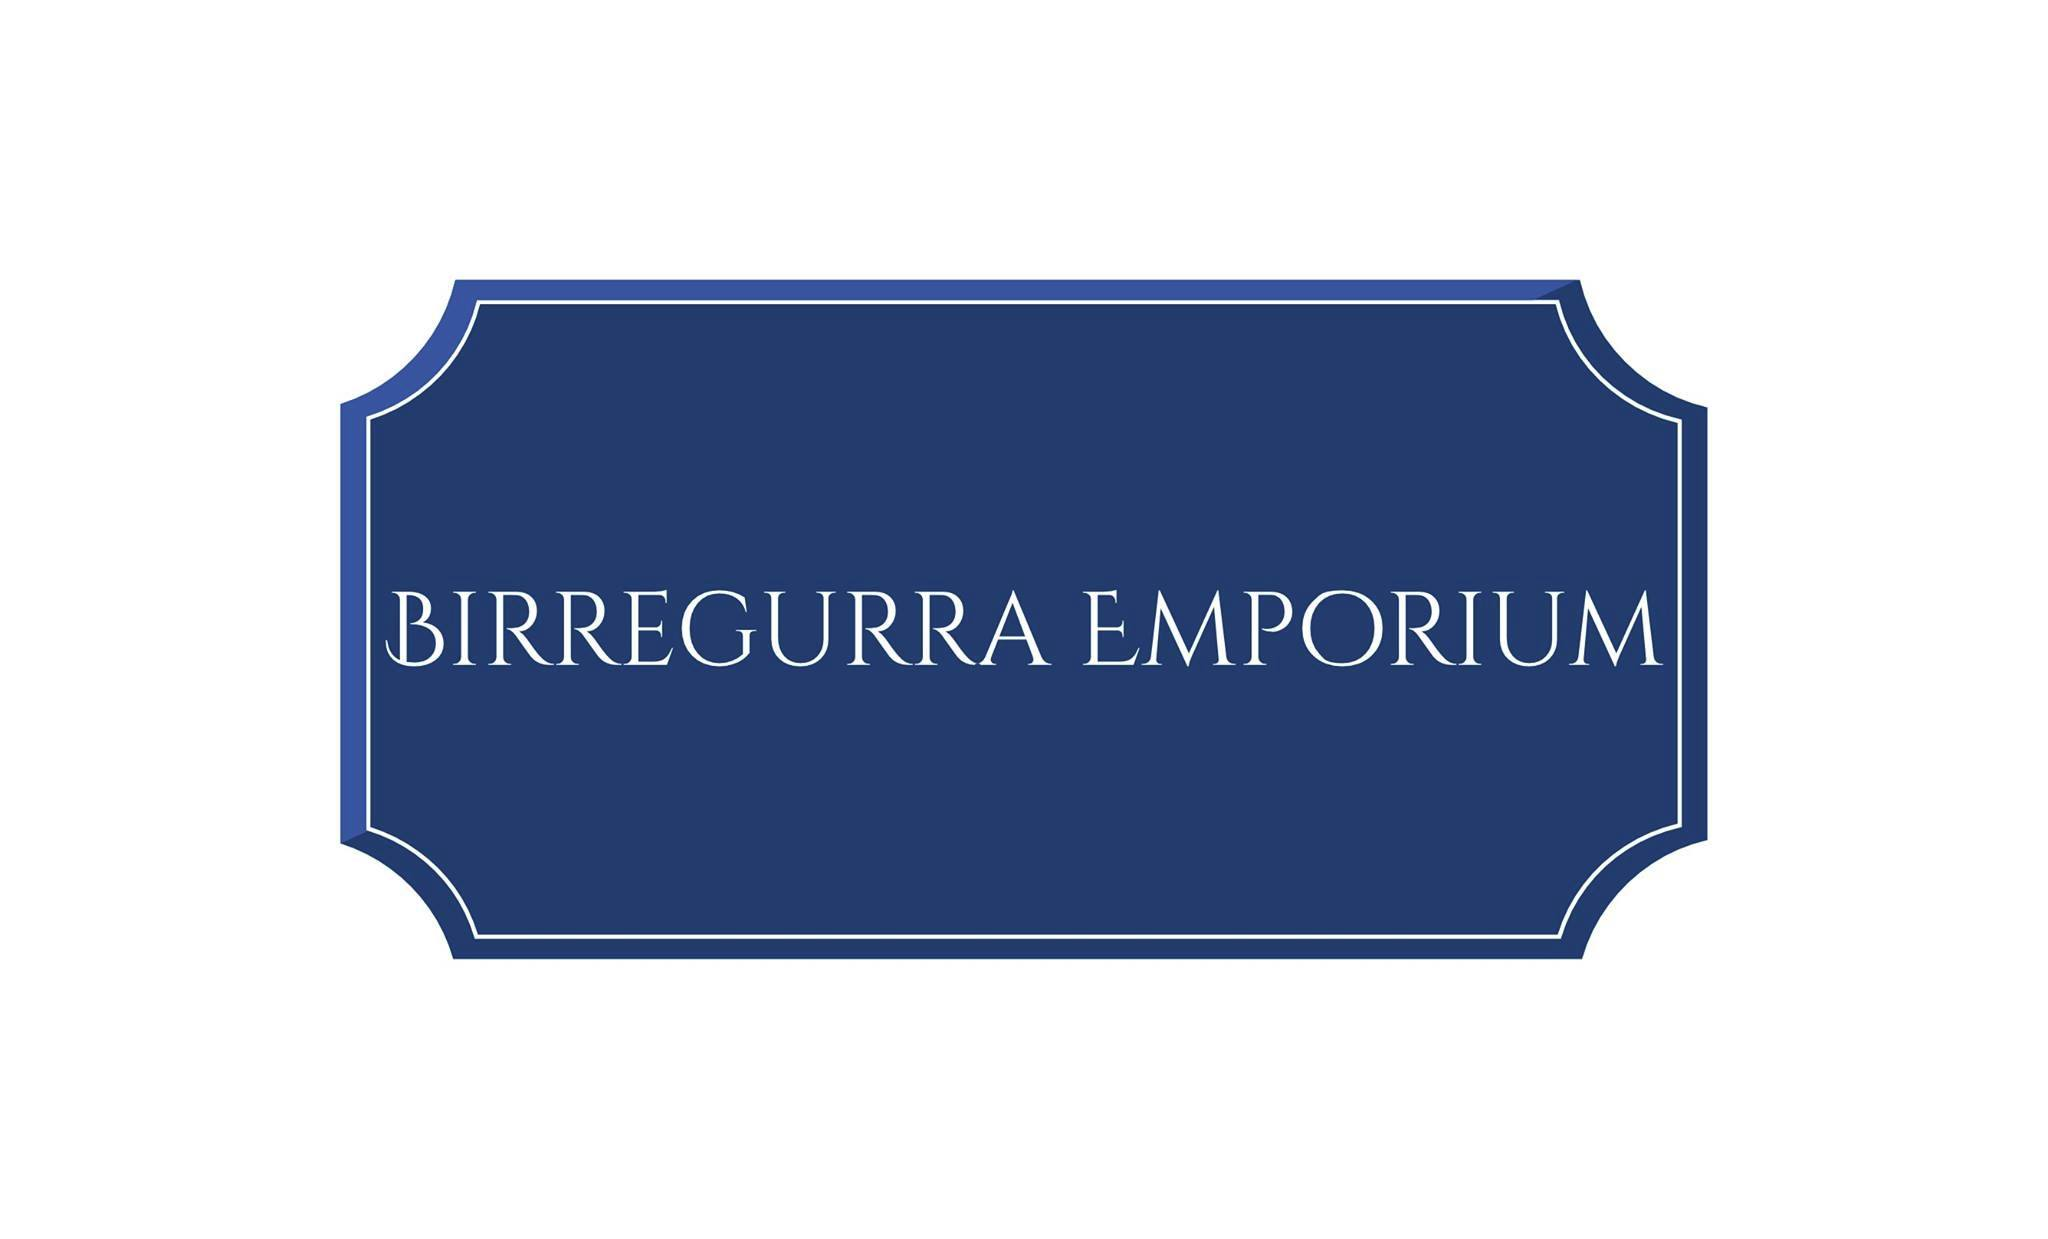 BIRREGURRA EMPORIUM – FOR SALE